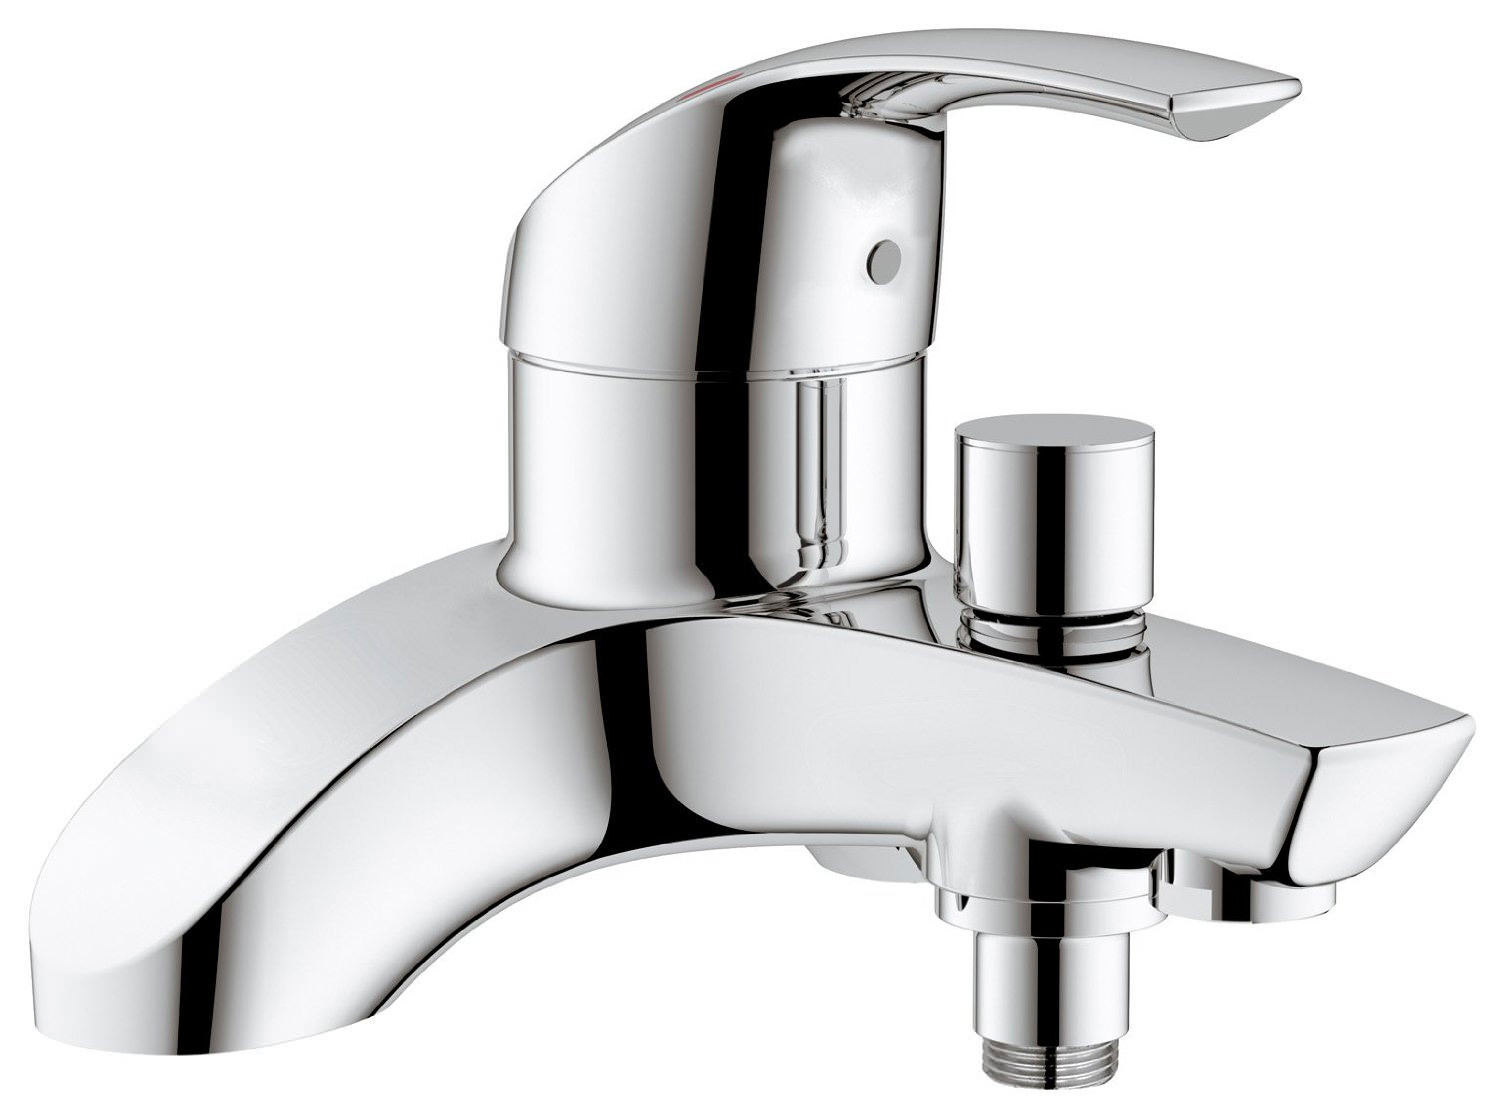 Grohe eurosmart deck mounted bath shower mixer tap 25105000 for Bathroom taps